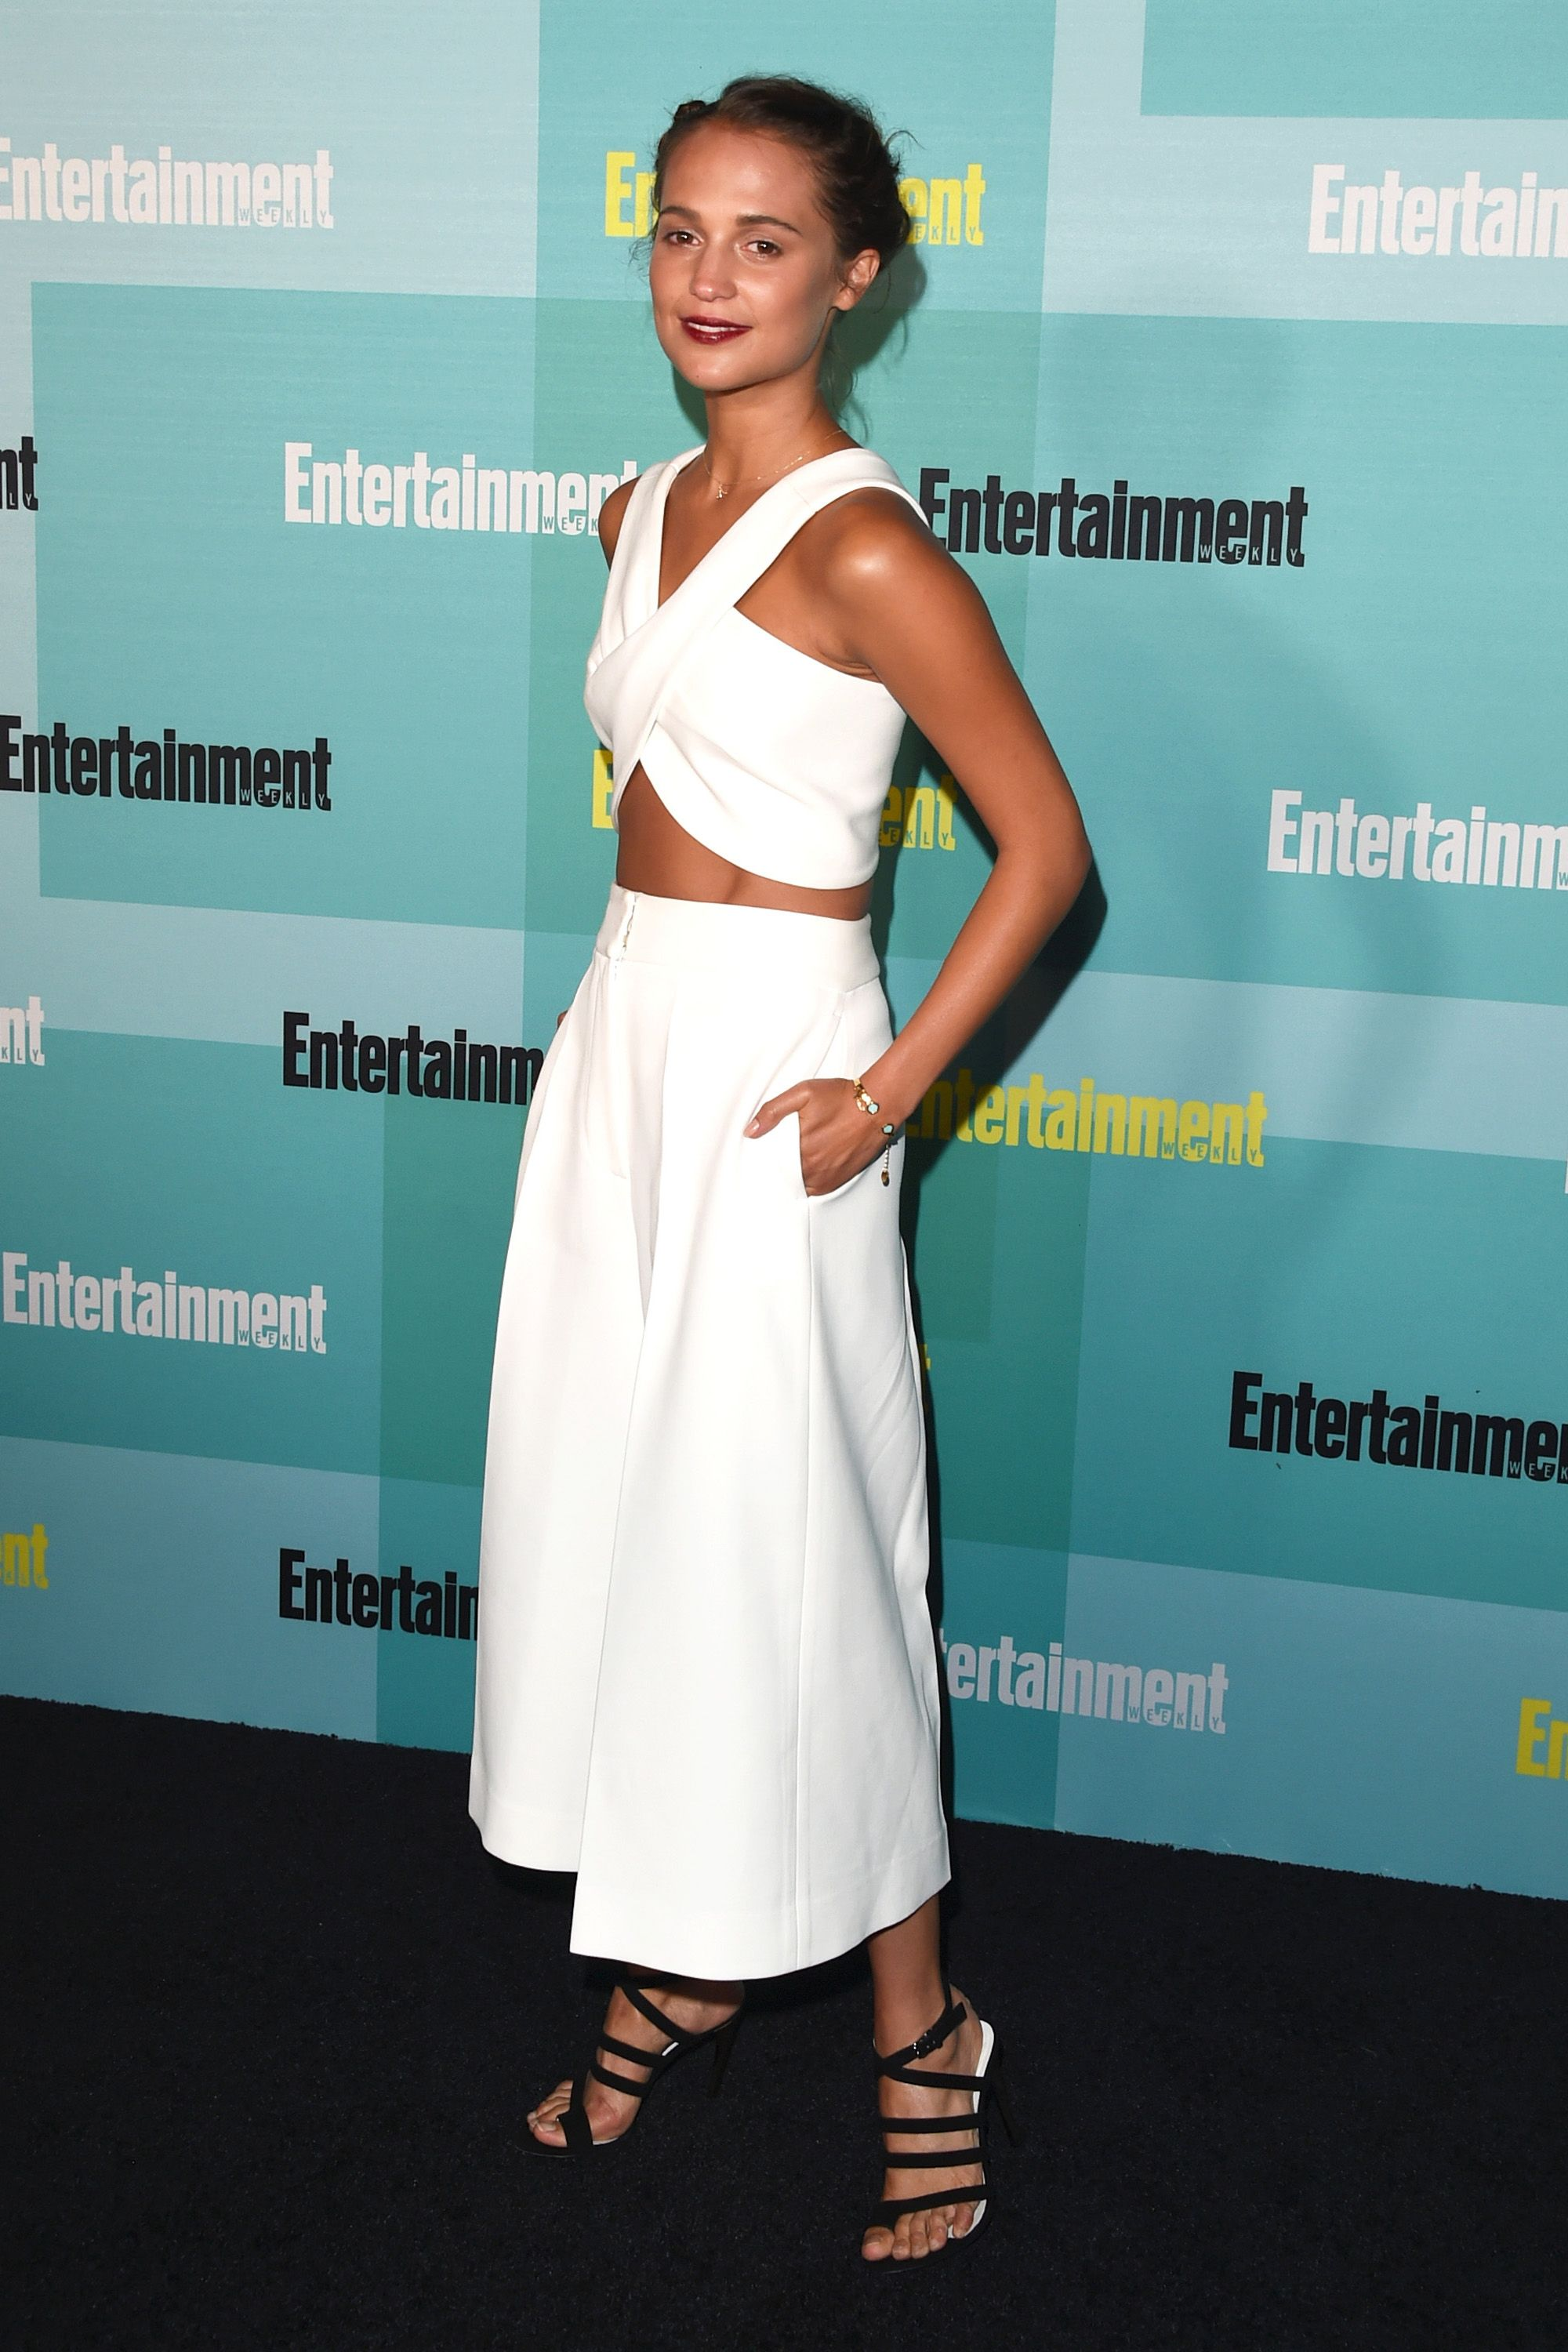 SAN DIEGO, CA - JULY 11:  Actress Alicia Vikander attends Entertainment Weekly's Comic-Con 2015 Party sponsored by HBO, Honda, Bud Light Lime and Bud Light Ritas at FLOAT at The Hard Rock Hotel on July 11, 2015 in San Diego, California.  (Photo by Jason Merritt/Getty Images for Entertainment Weekly)